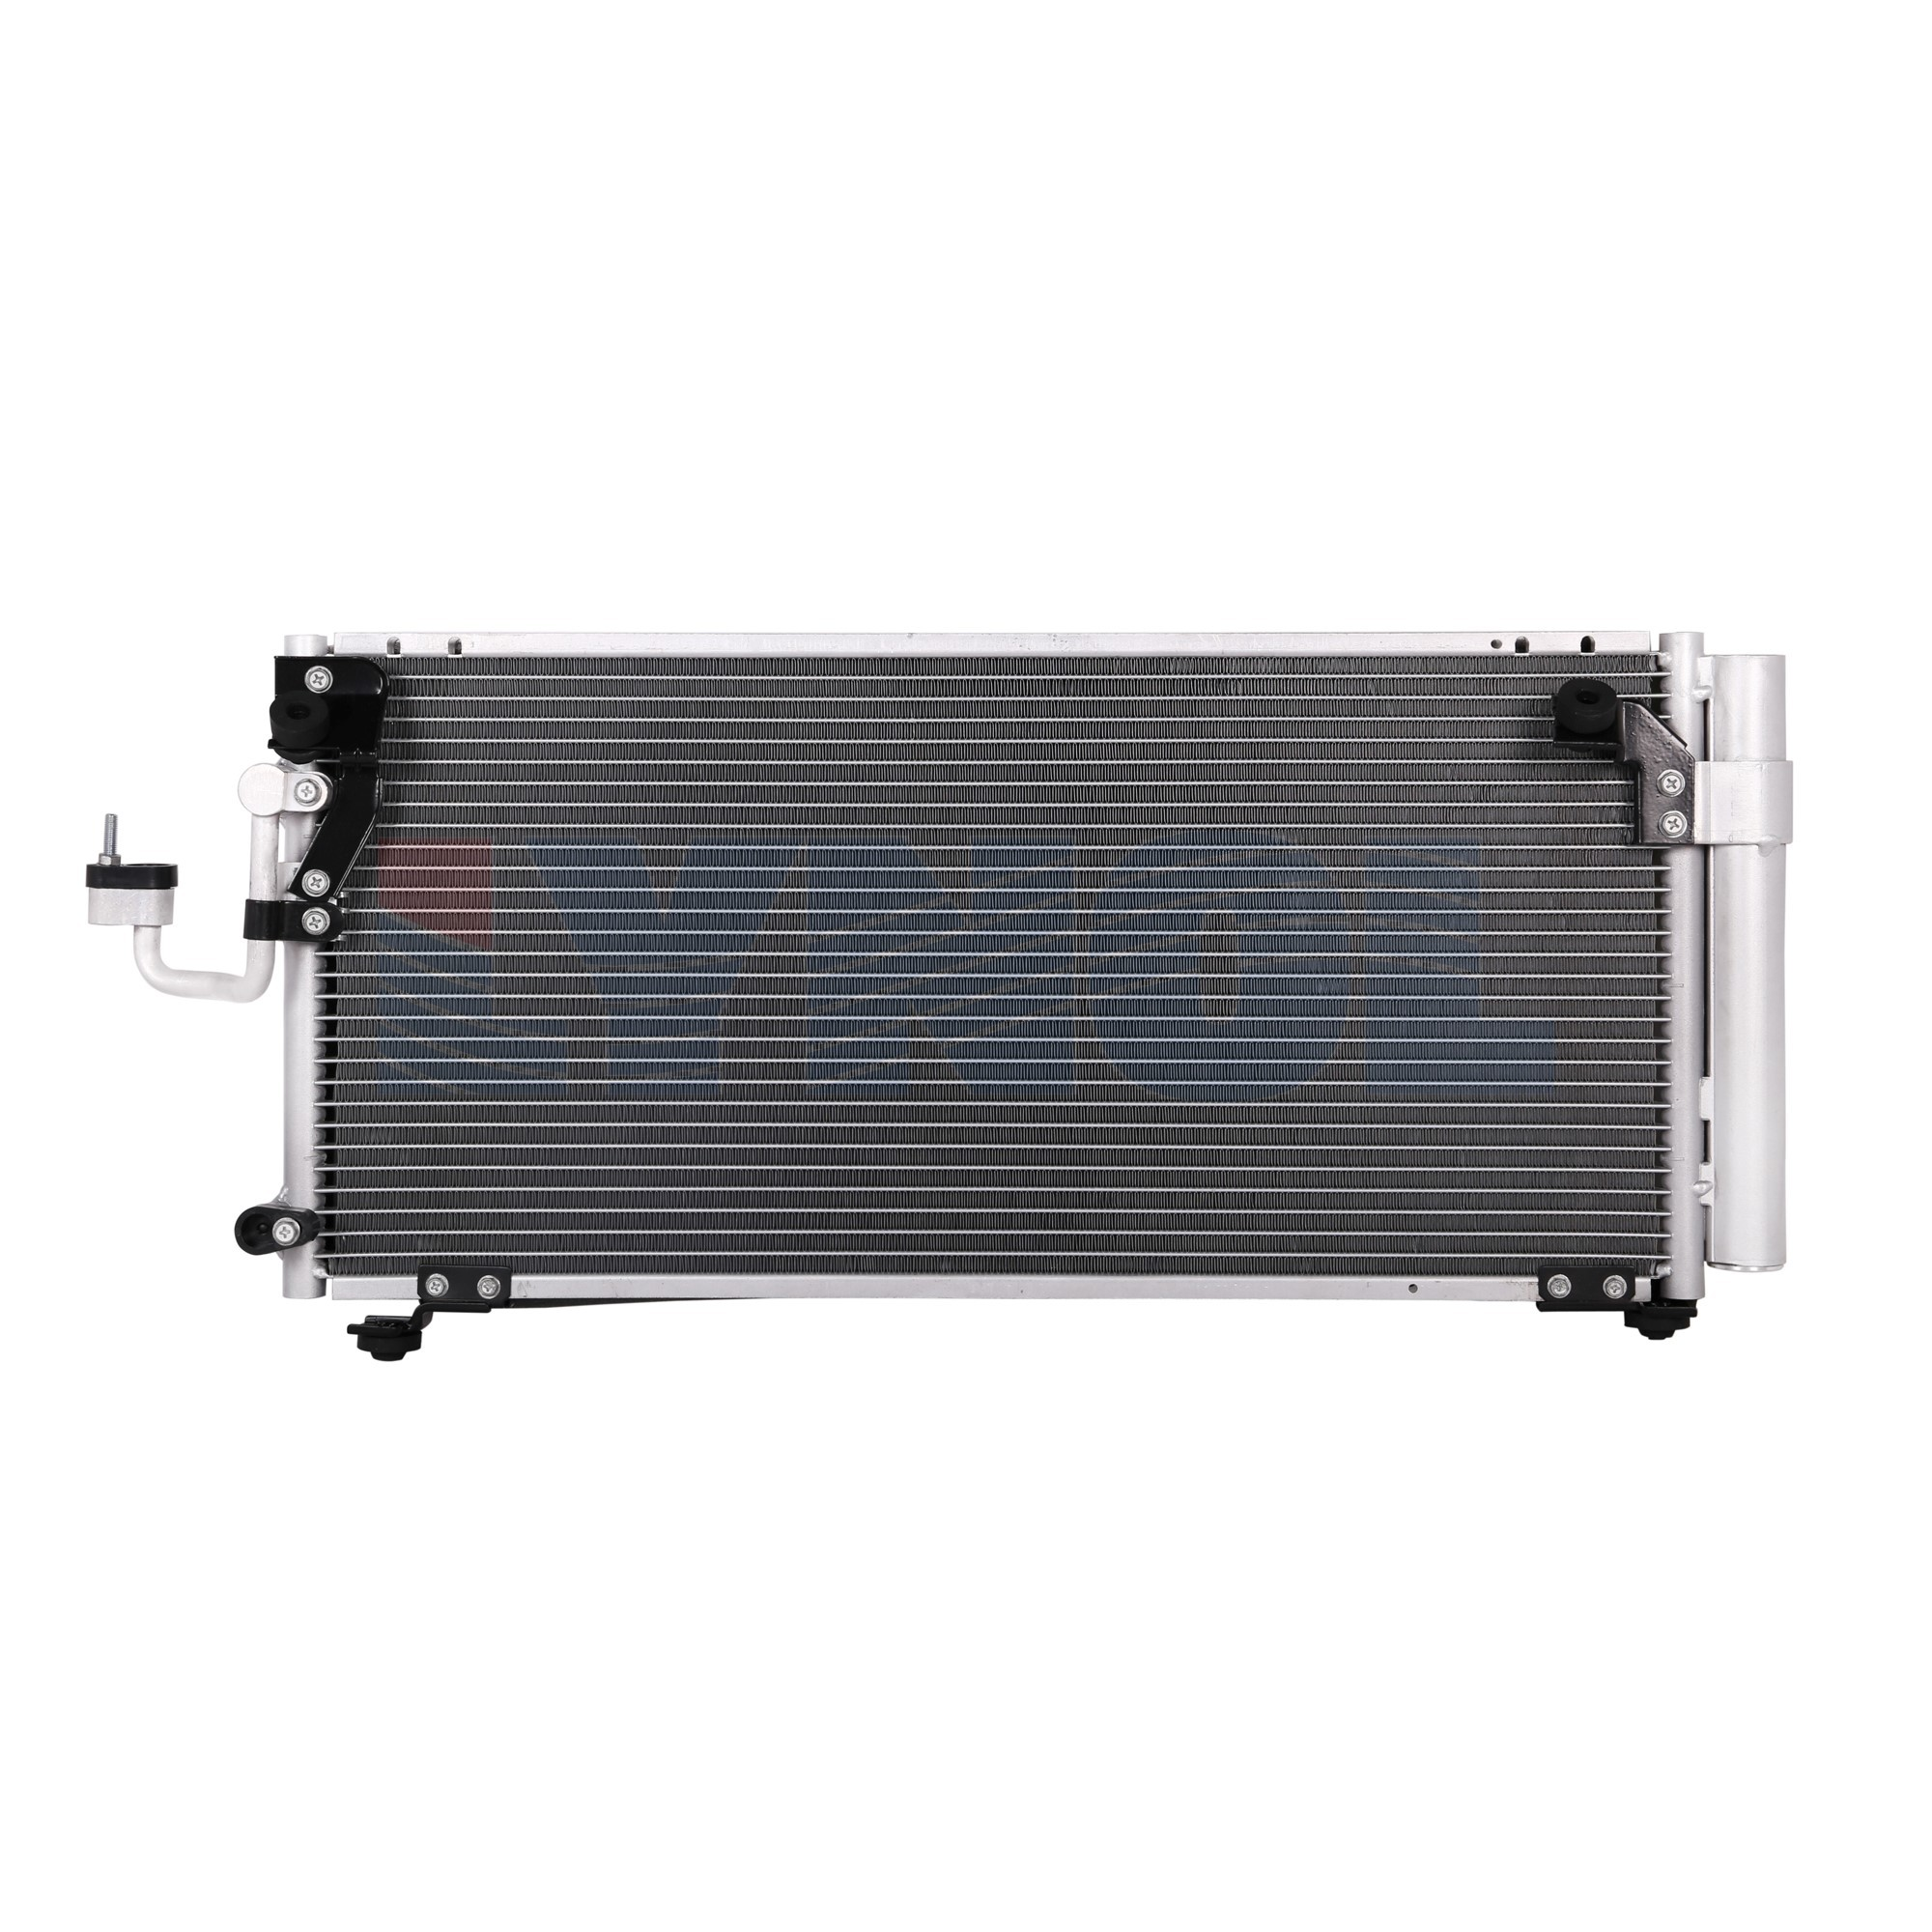 AC4967 - AC Condensers  - 01-05 Chrysler Cirrus / Sebring, Dodge Stratus, Mitsubishi Eclipse, Coupe With dryer